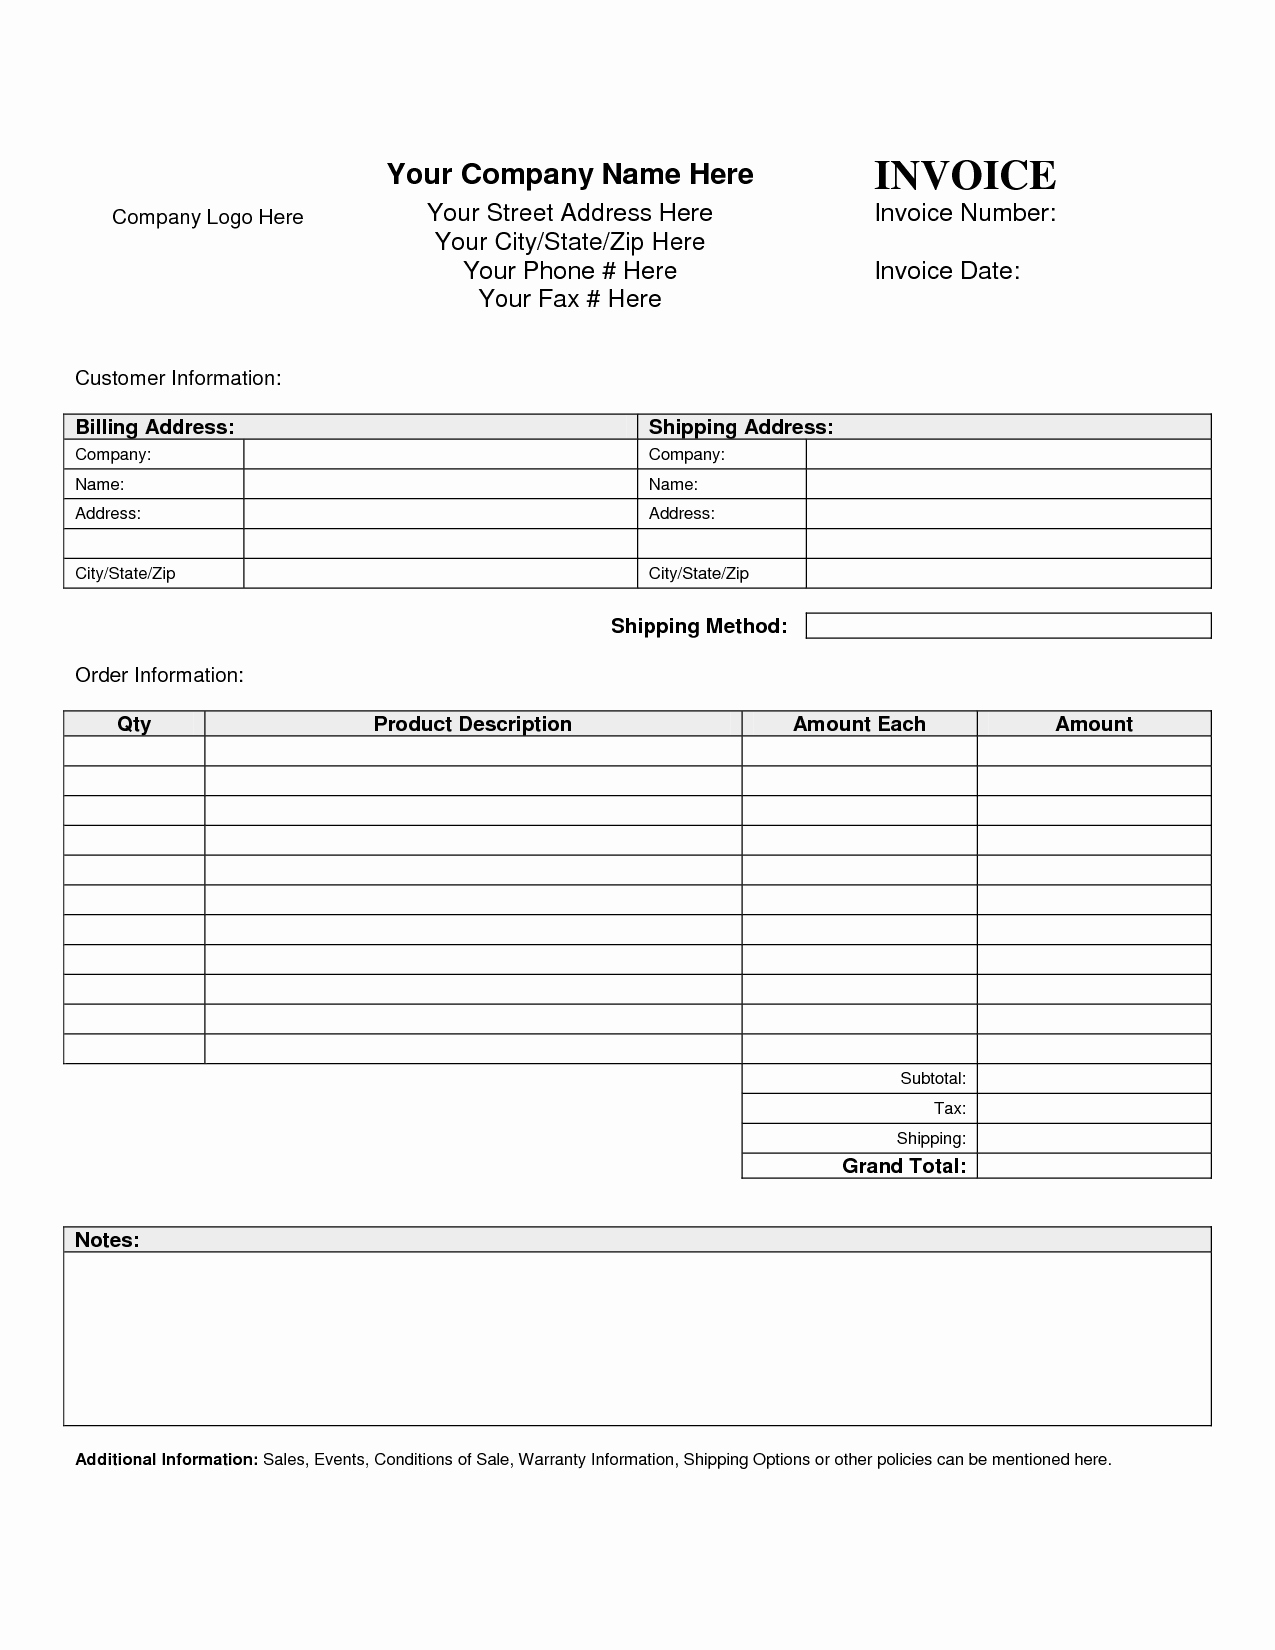 Free Printable Service Invoice Template Fresh Billing Invoice Template Free